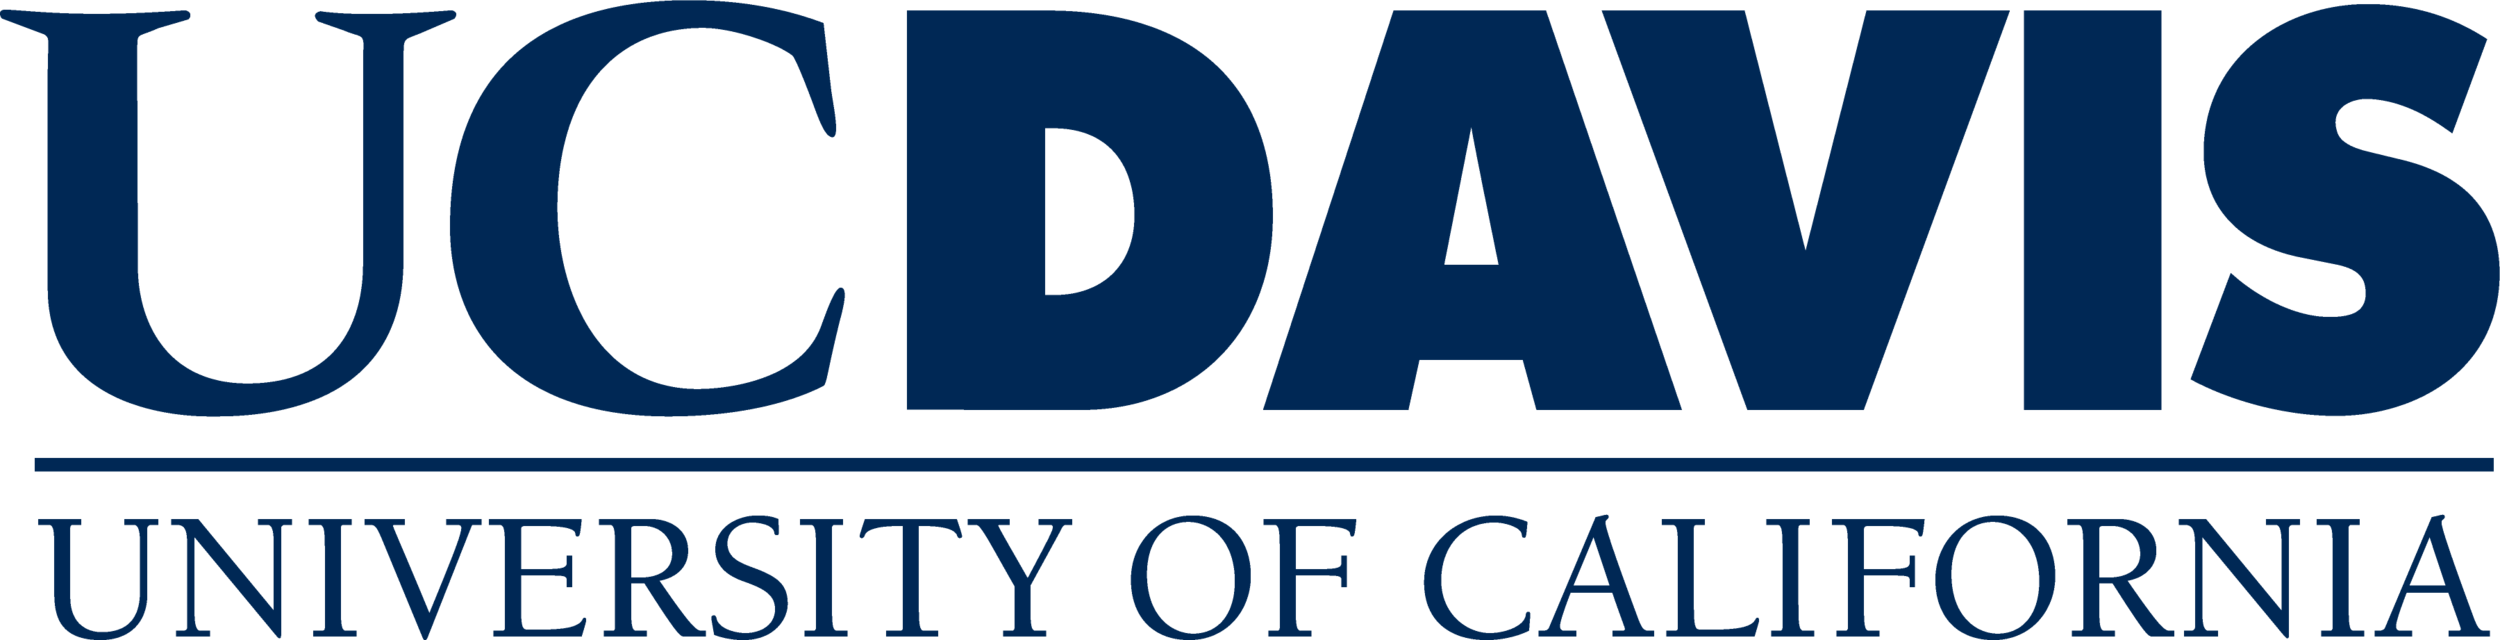 expanded_logo_blue RGB.png